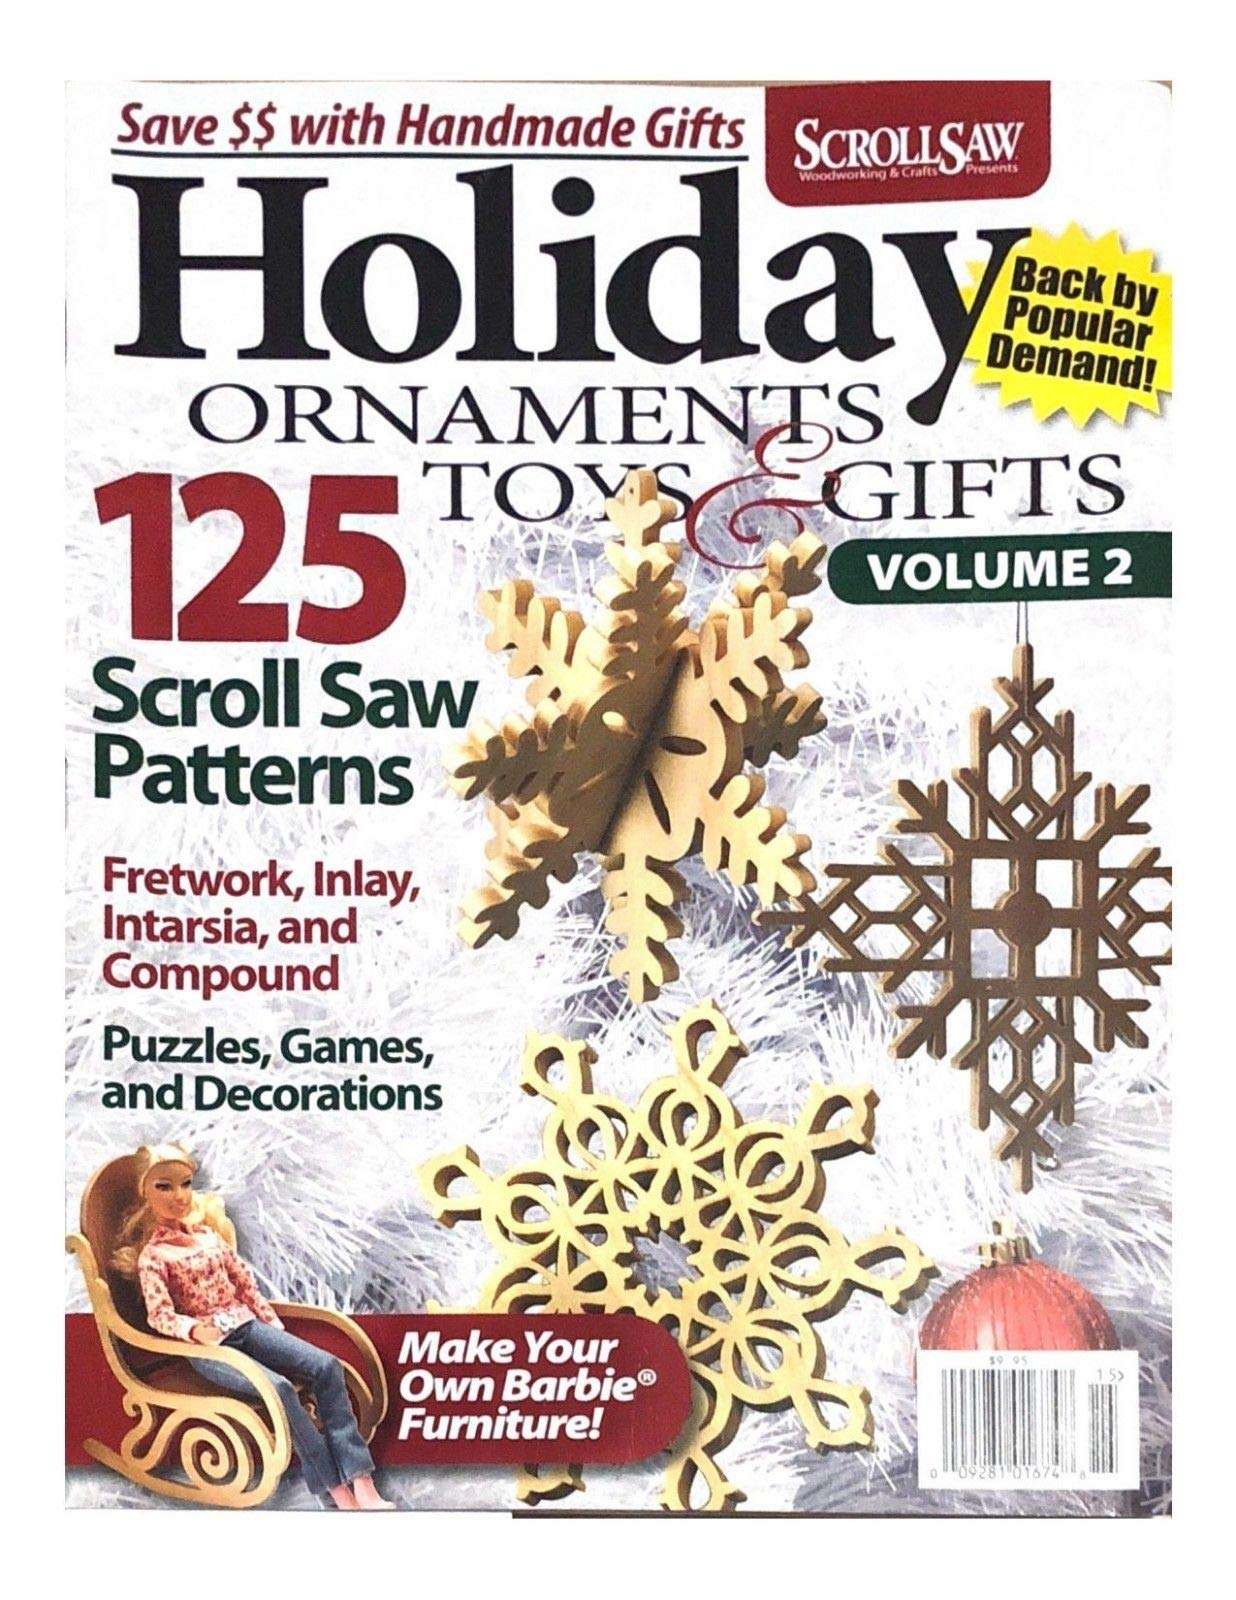 SCROLL SAW WOOD WORKING & CRAFTS MAGAZINE, ORNAMENTS TOYS & GIFTS VOL.2